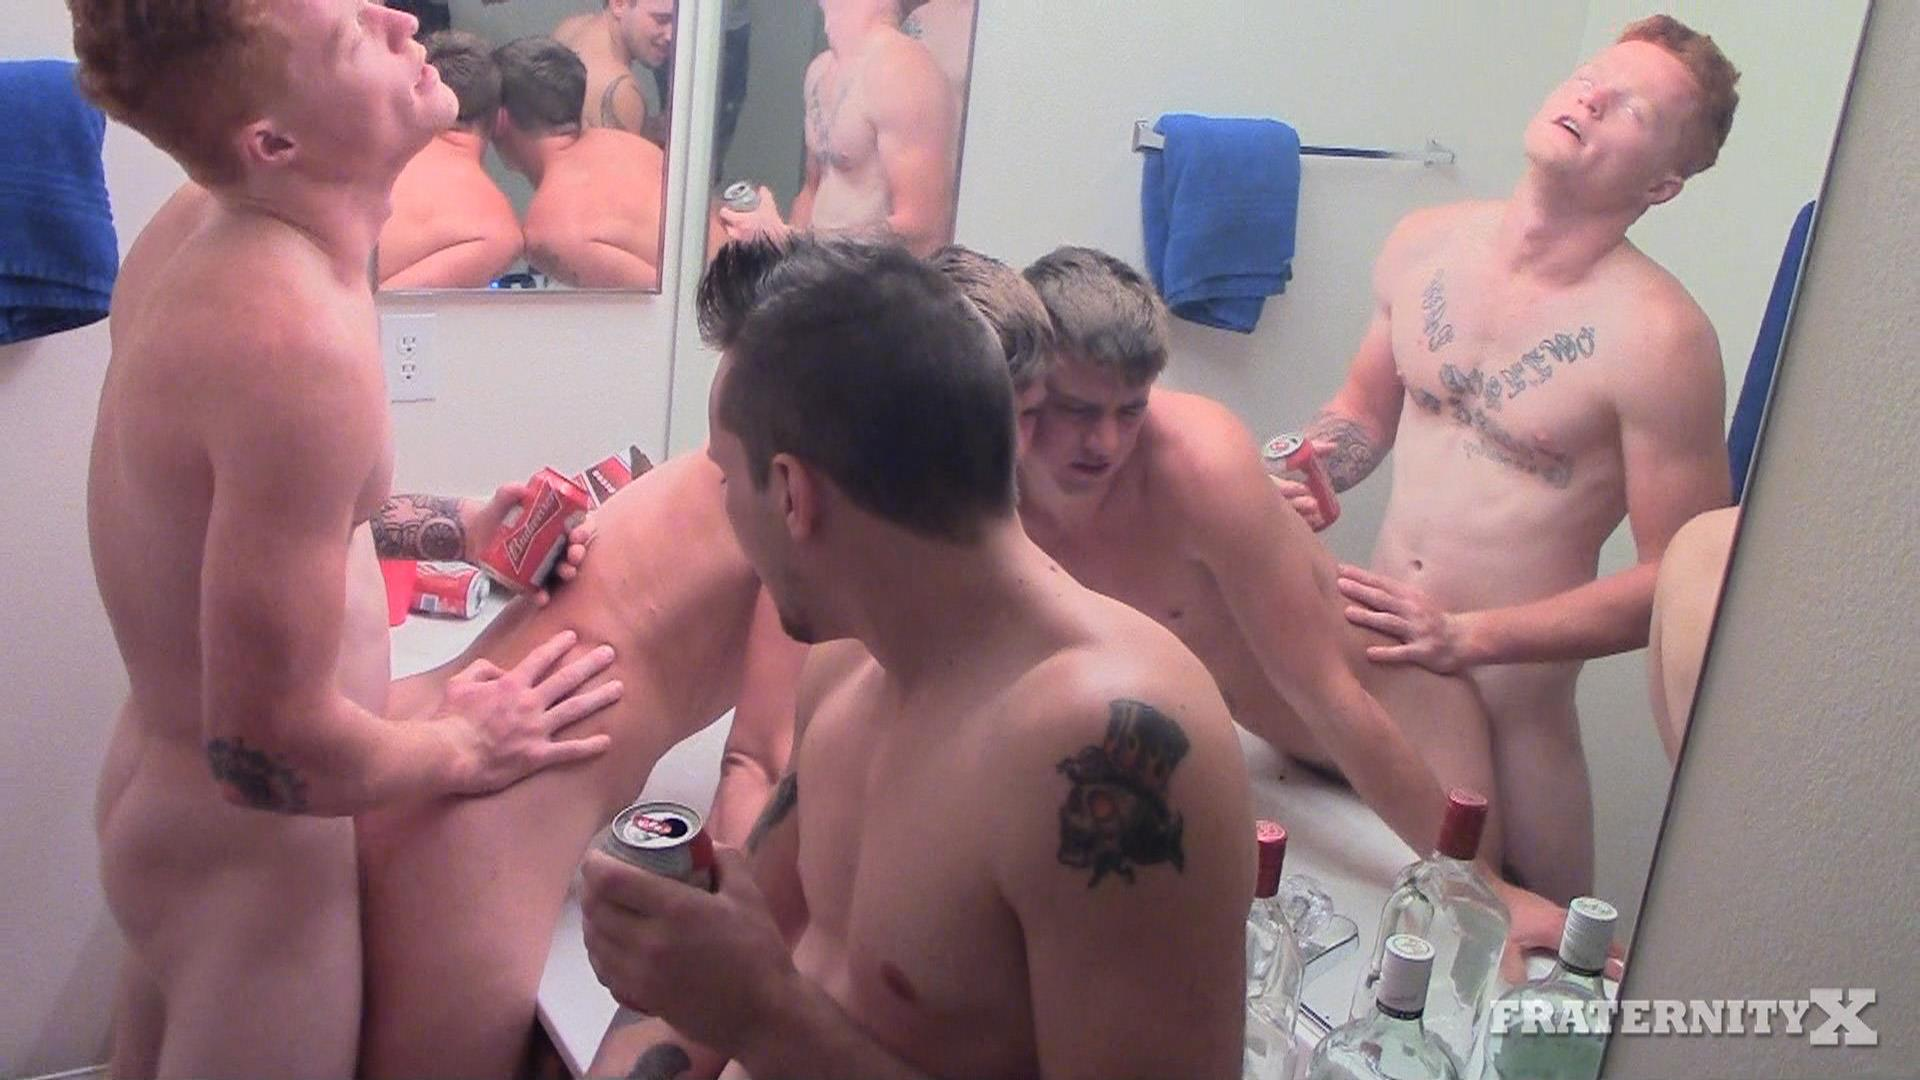 Fraternity X College Guys Bareback Sex Party Amateur Gay Porn 03 College Frat Boy Gets Bareback Fucked In The Shower